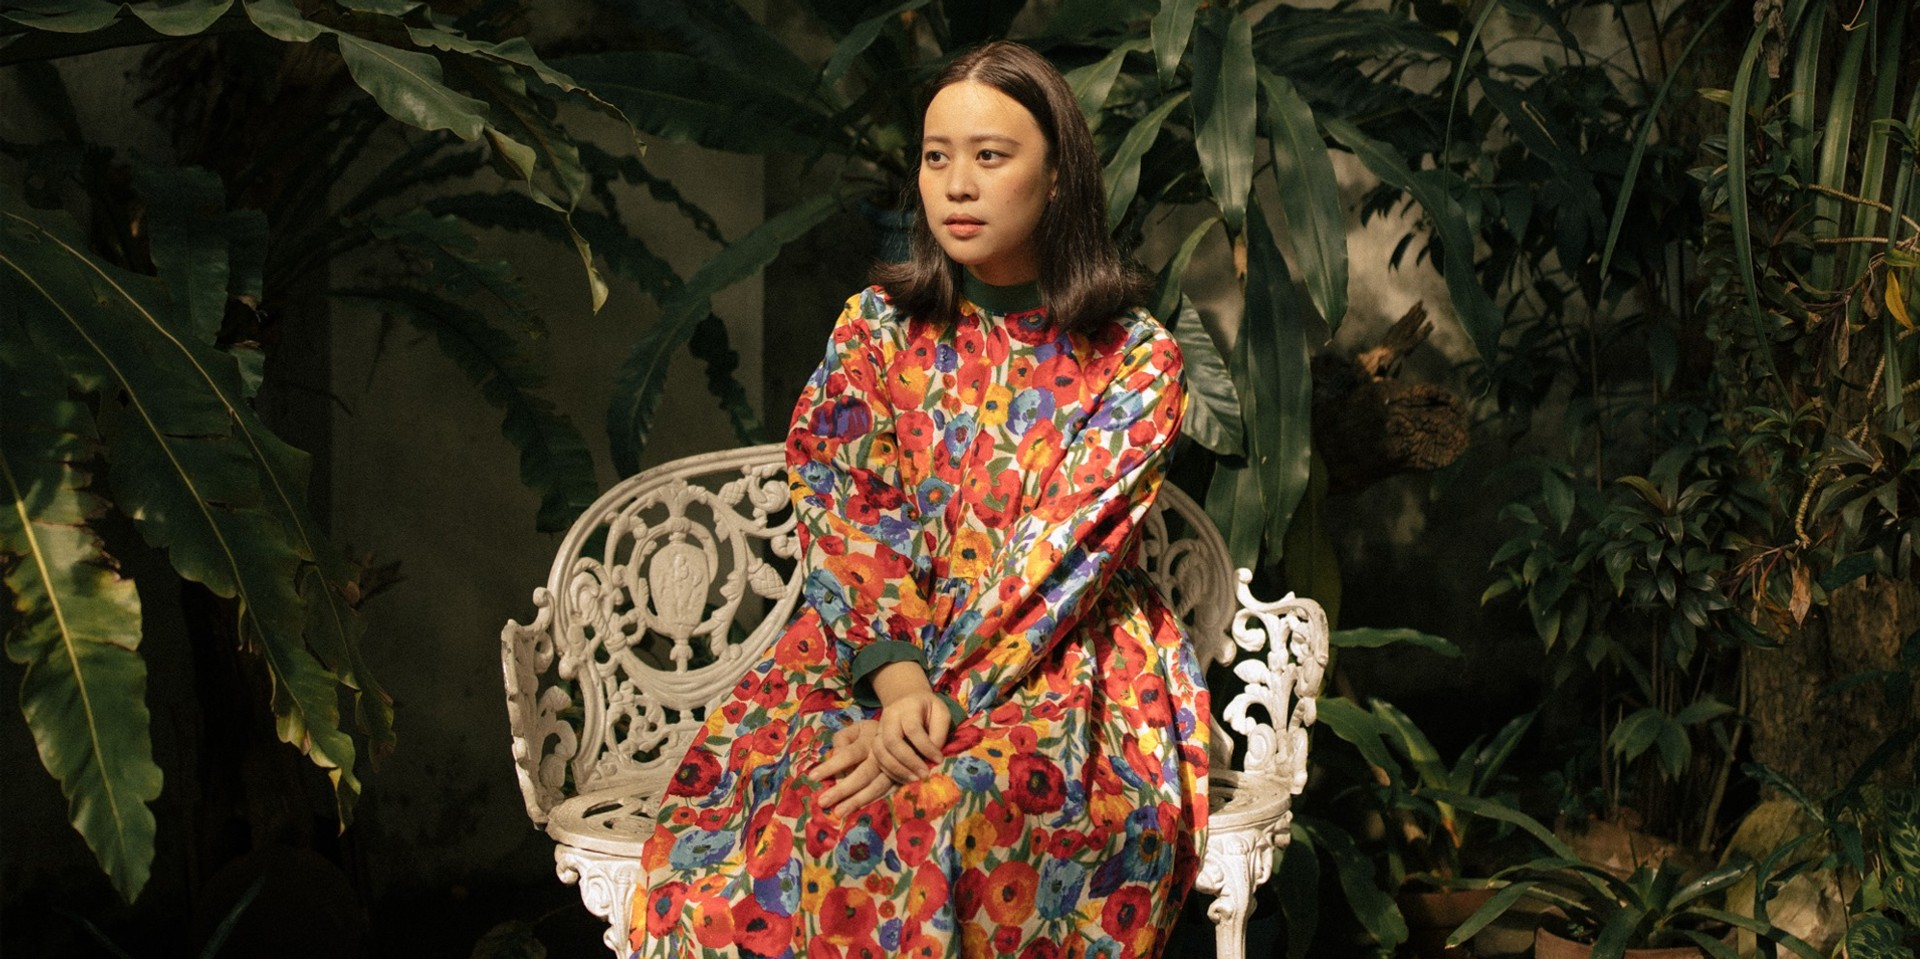 Reese Lansangan counts down to the release of Playing Pretend in the Interim EP with exclusive sneak peek